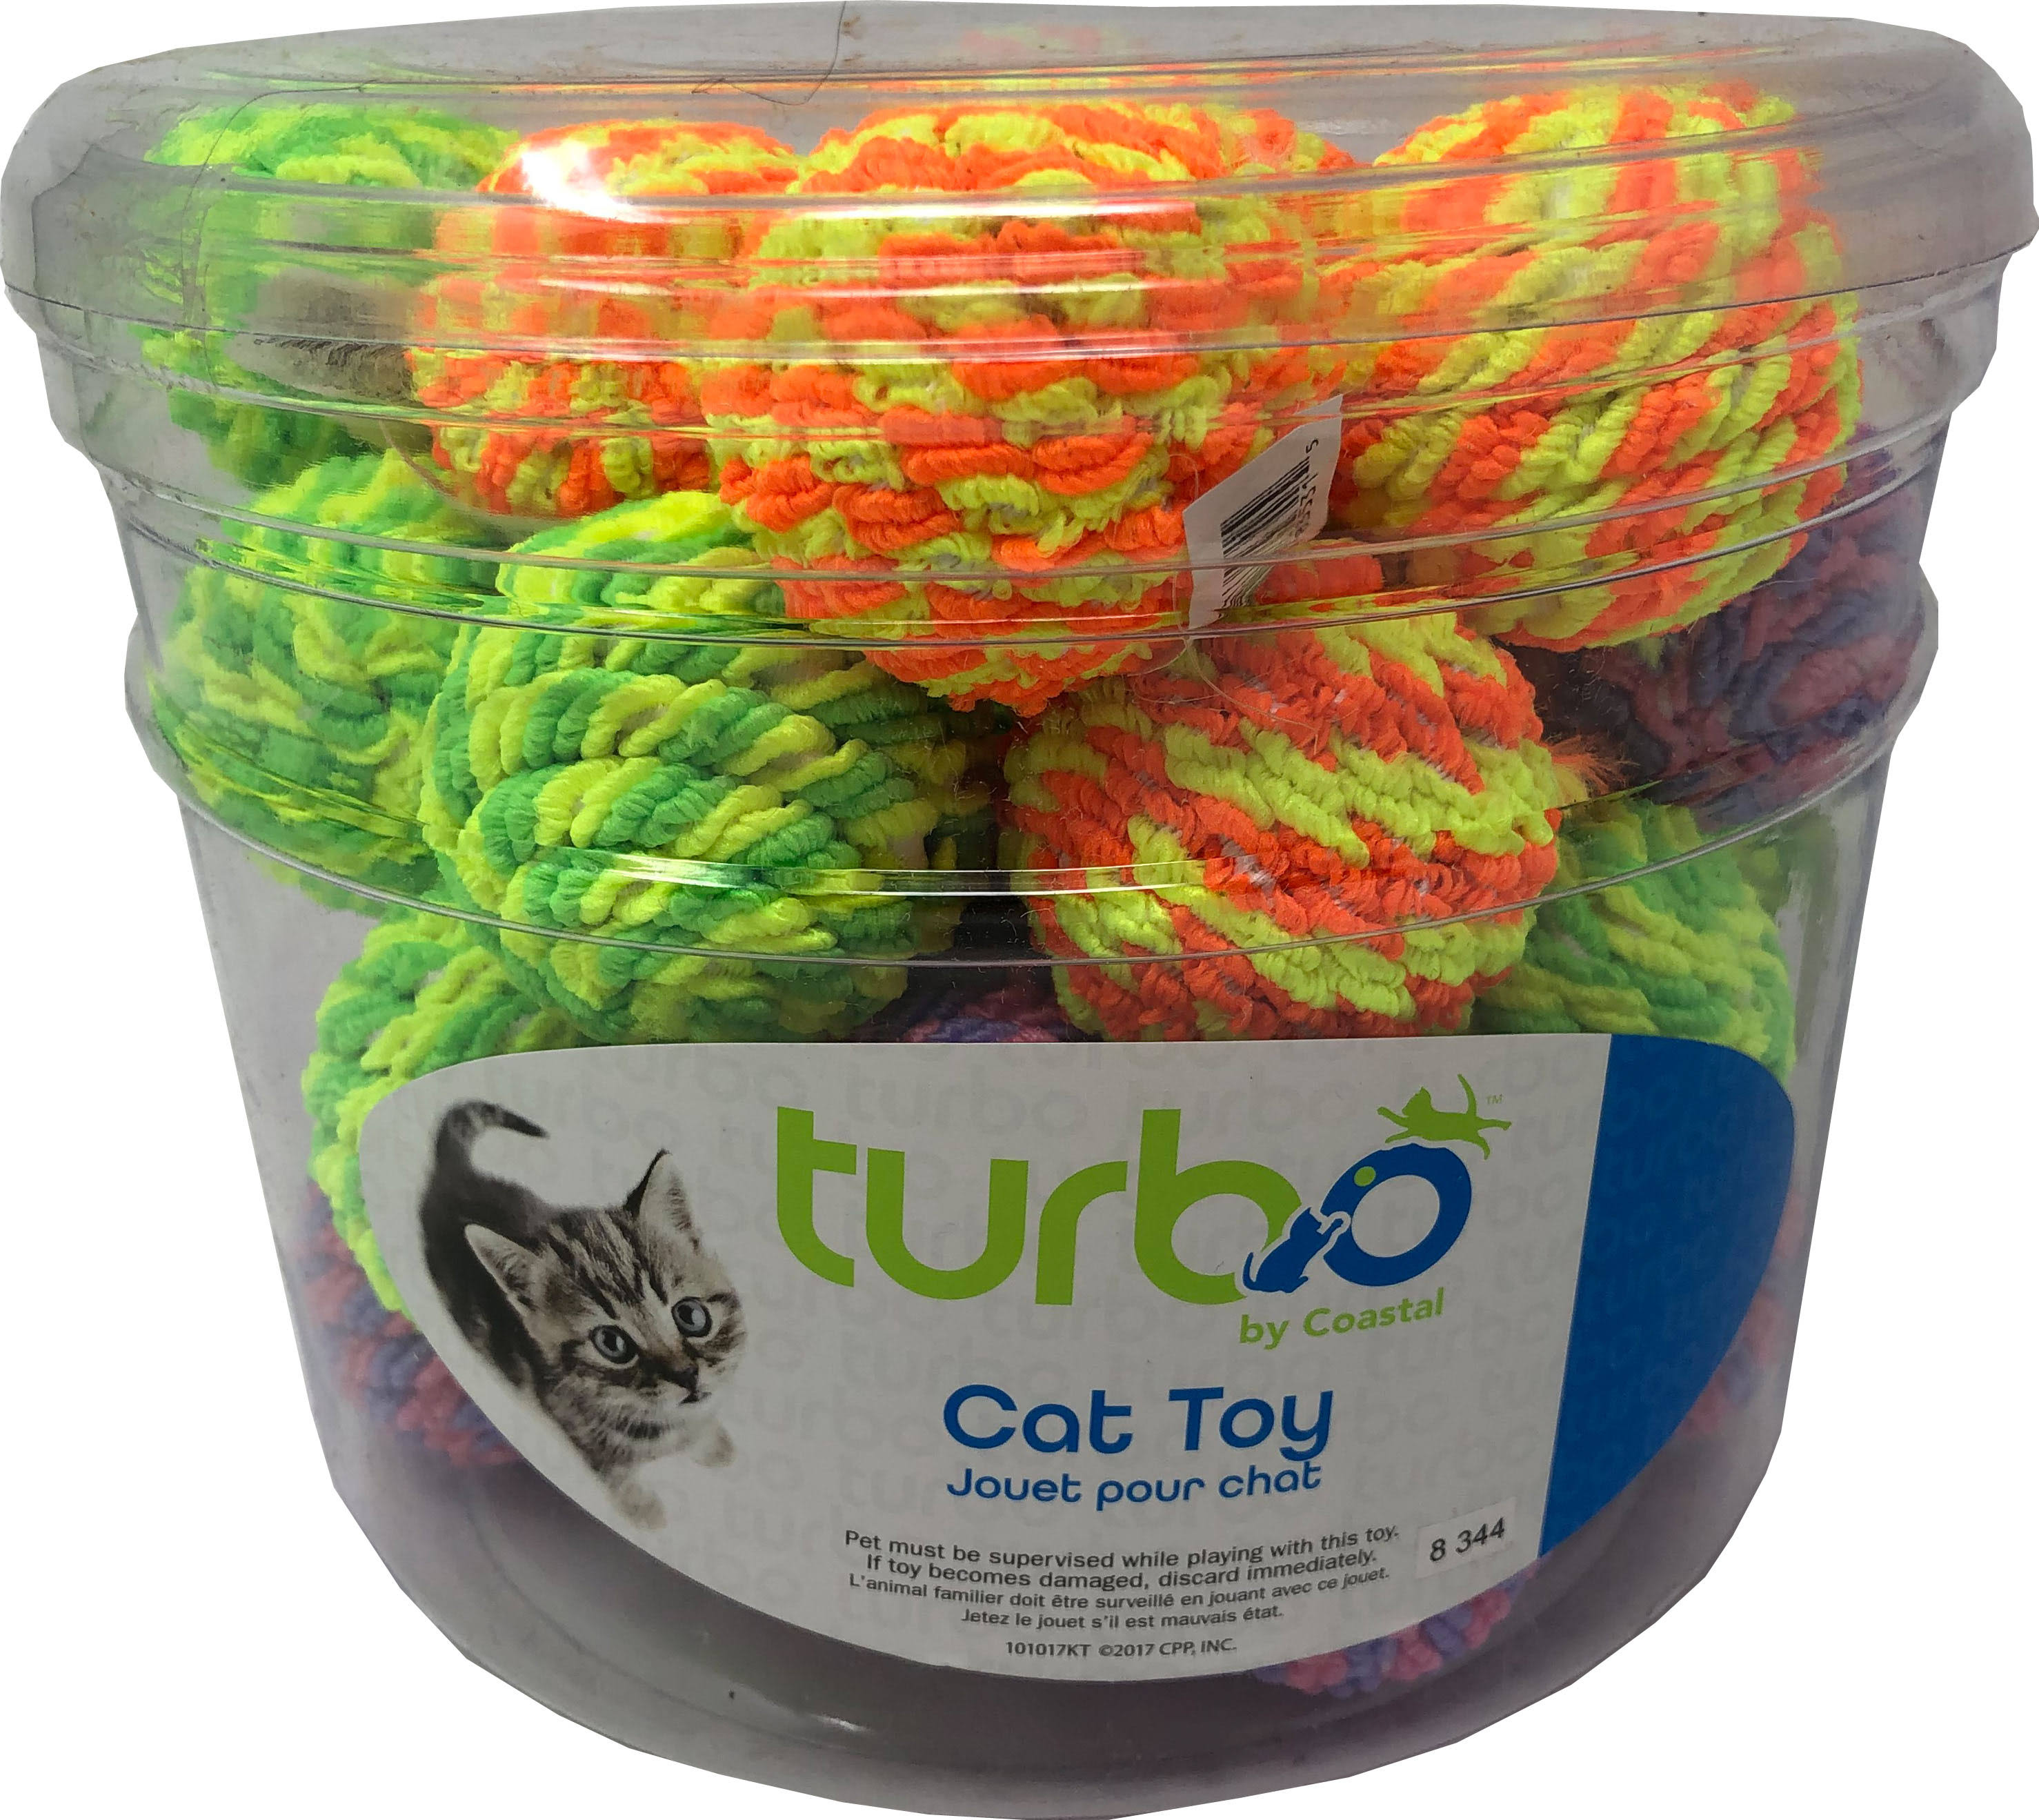 Coastal Pet Products 80521 NCLCAT Turbo Rattle Balls Cat Toy Canister - Multicolor 36 Piece - Pack of 8